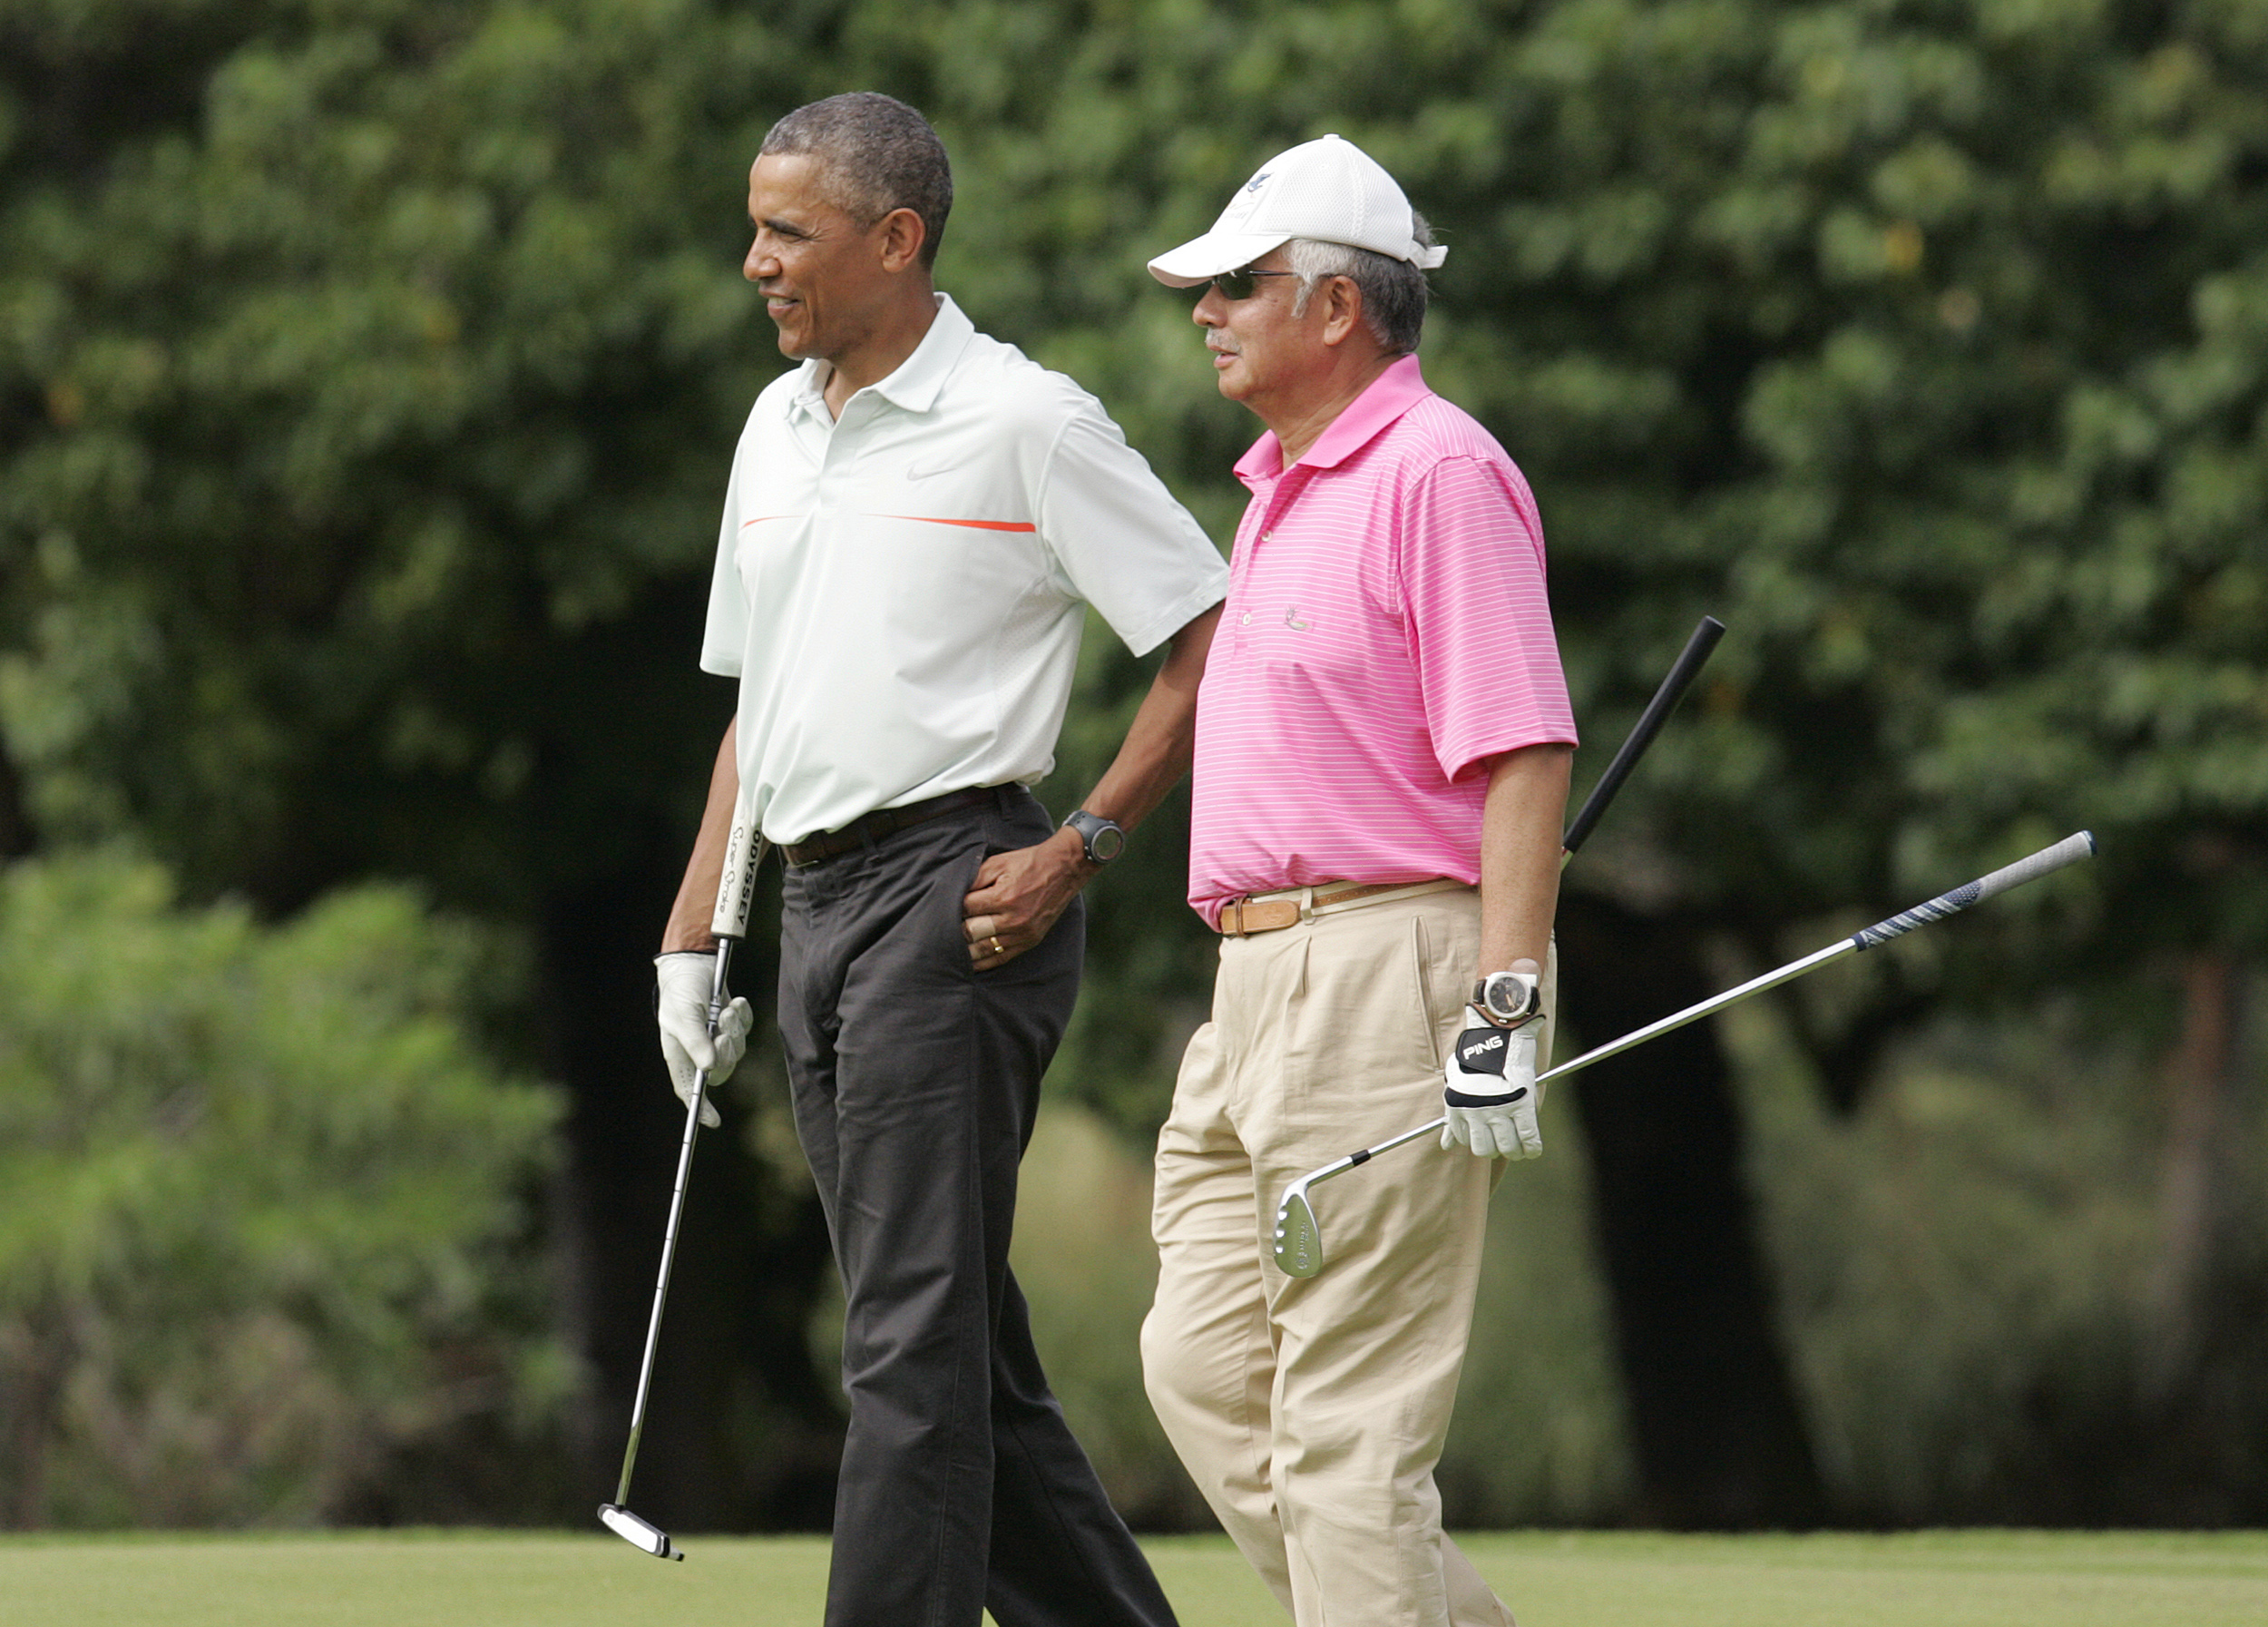 U.S. President Barack Obama and Malaysia's Prime Minister Najib Razak walk off 18th hole while playing a round of golf at the Clipper Golf course on Marine Corps Base Hawaii during Obama's Christmas holiday vacation in Kaneohe, Hawaii, on Dec. 24, 2014